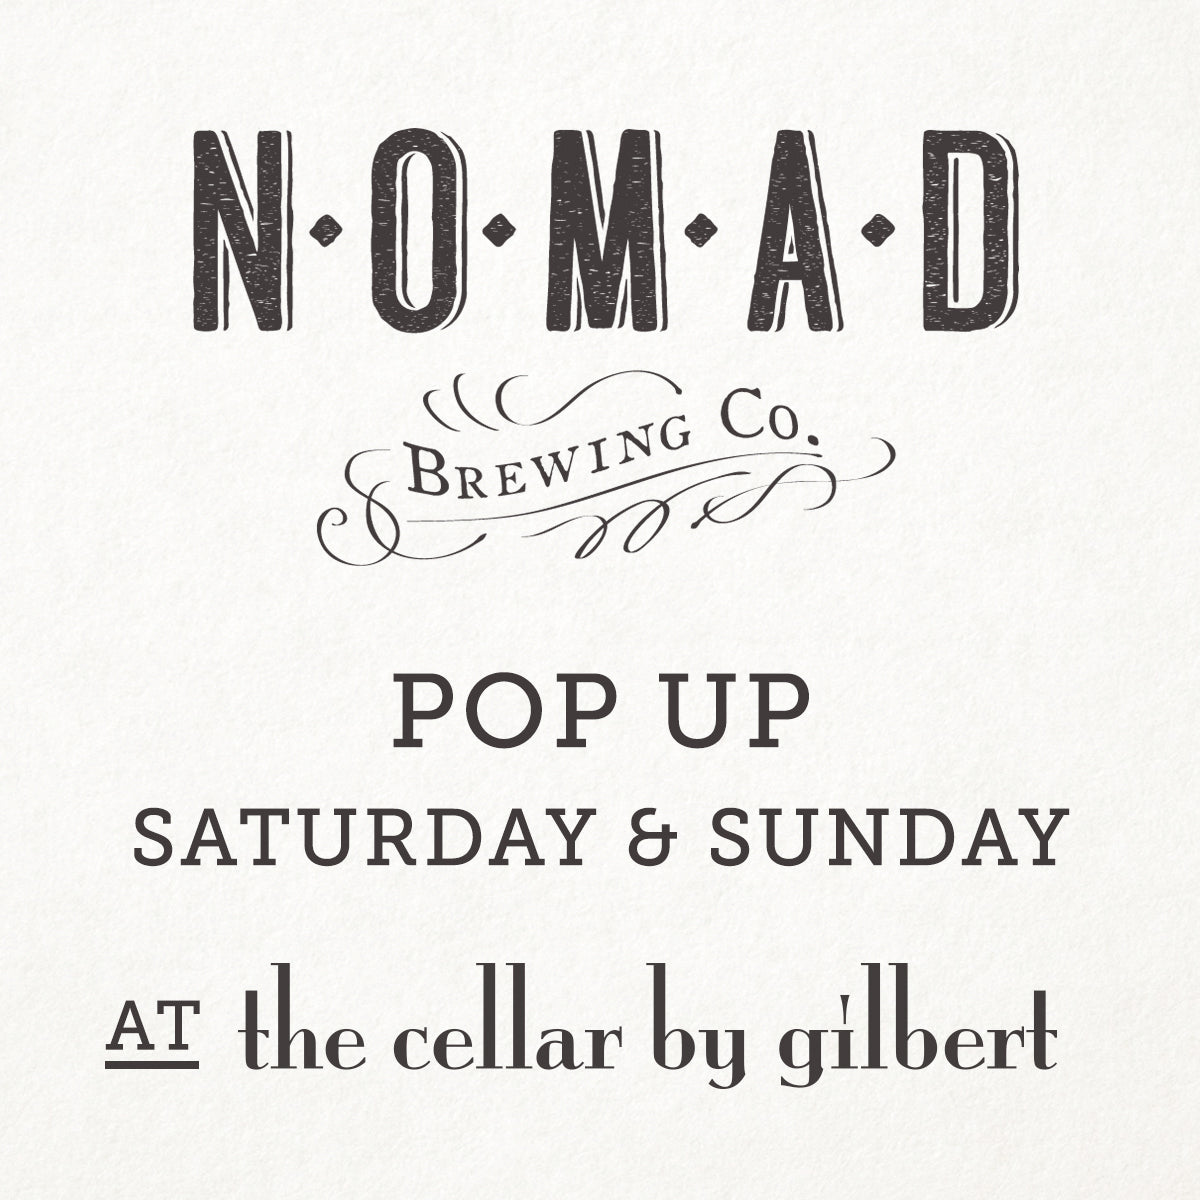 Nomad Brewing Co Pop Up - craft beer mudgee region Pip Sumbak